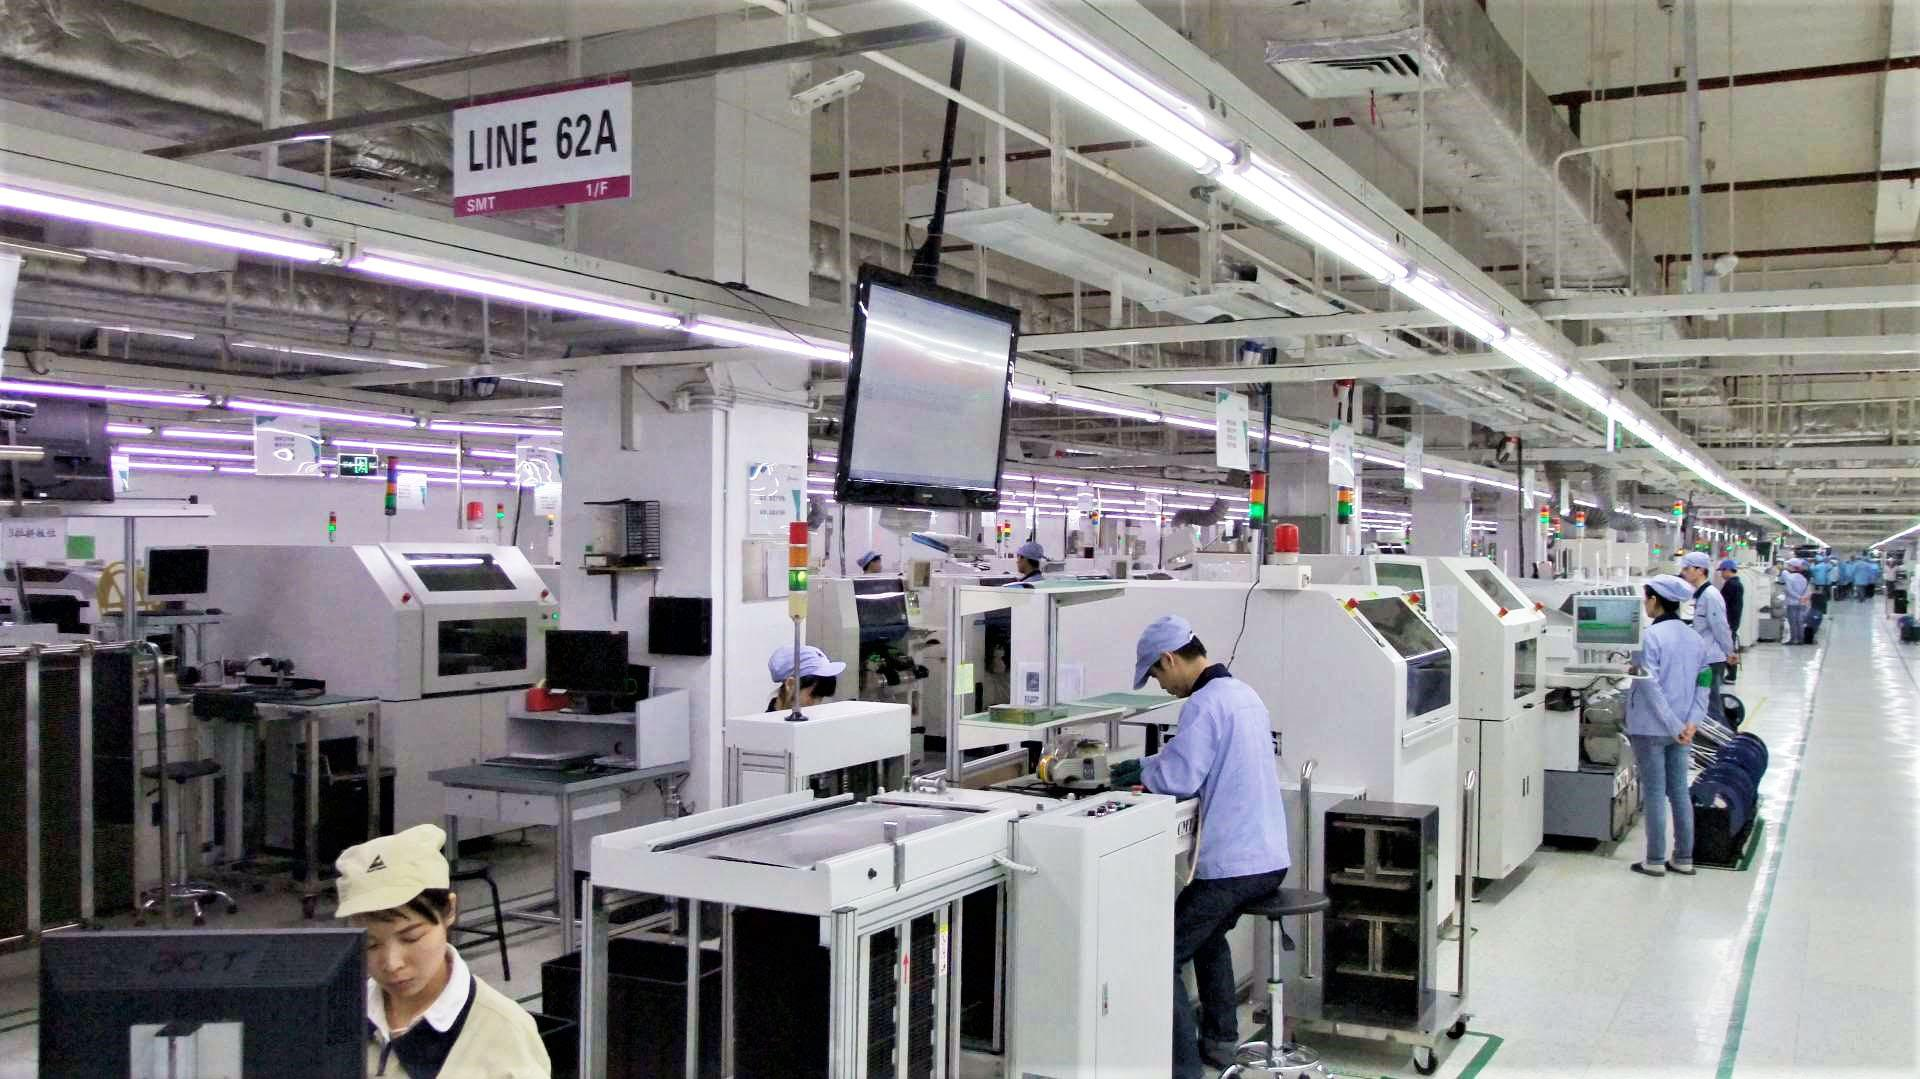 Amd Nvidia Factory Production